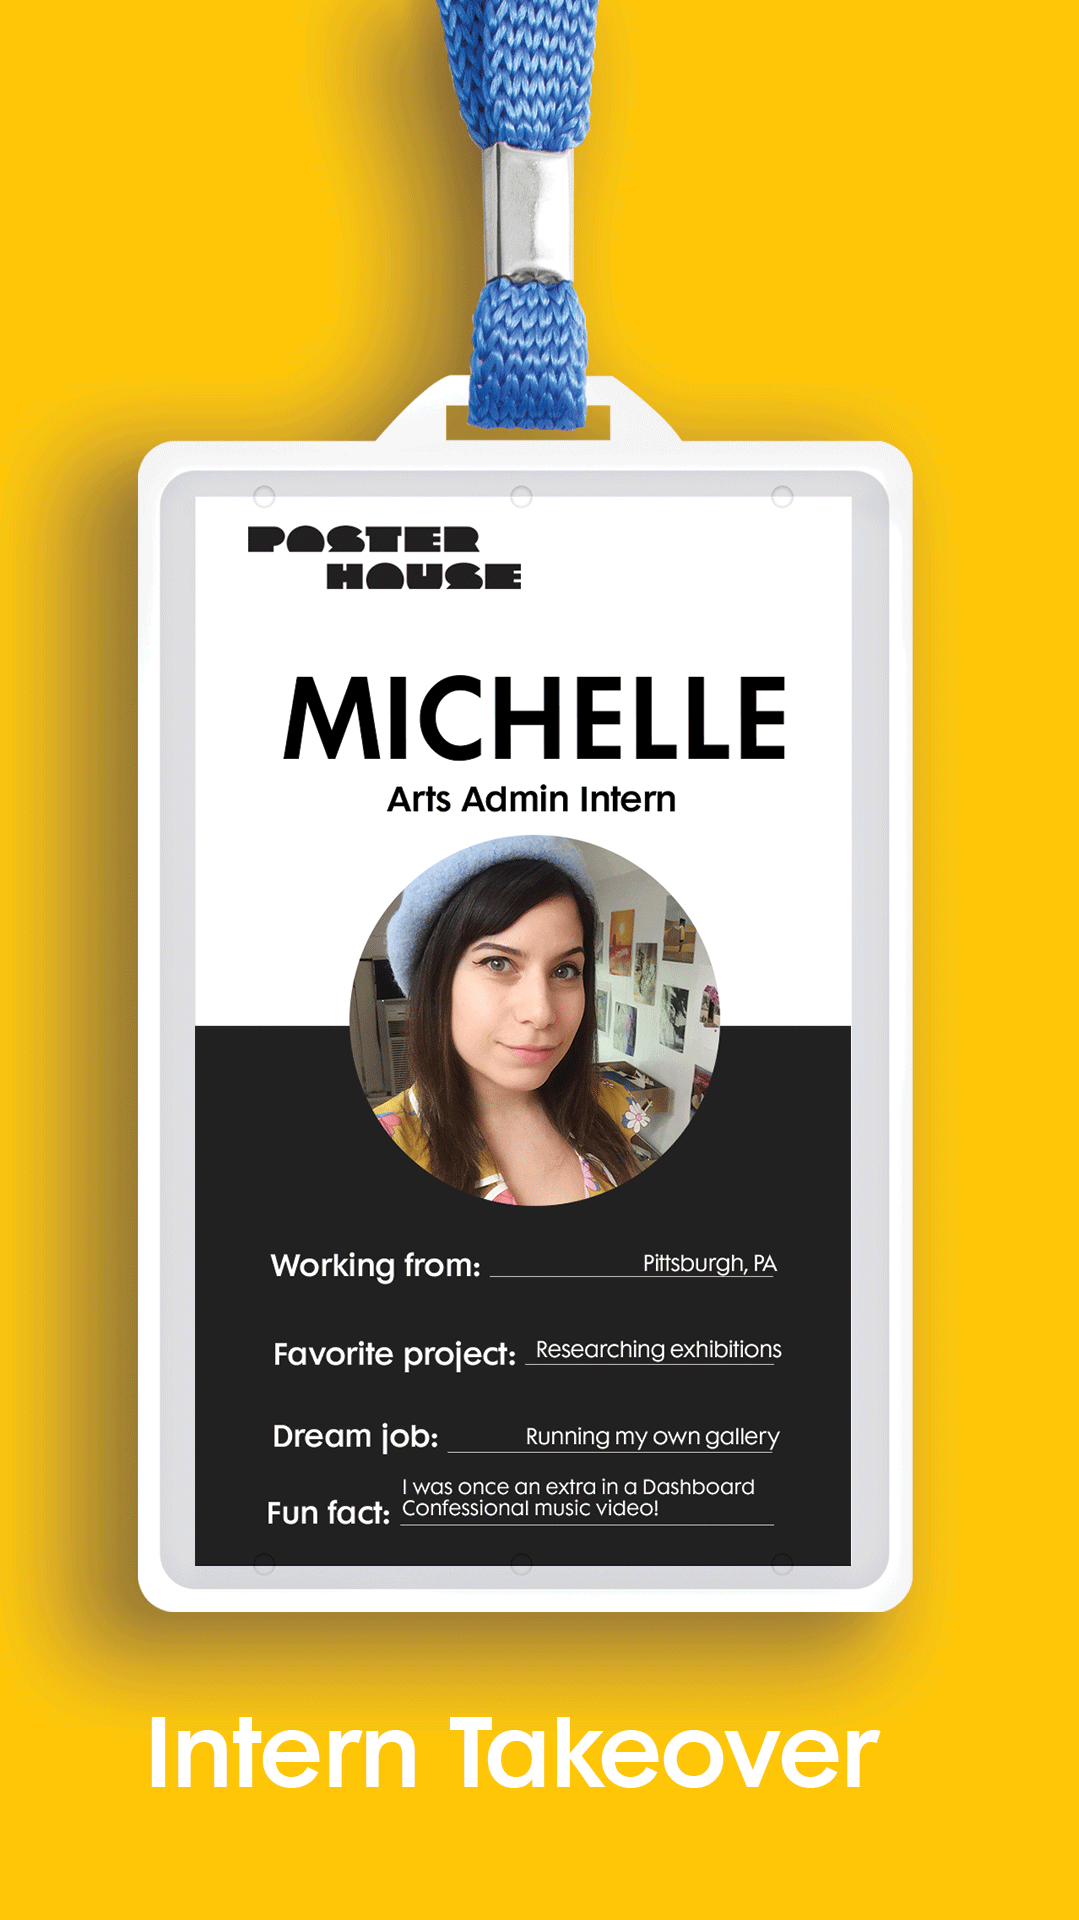 photograph of a nametag with the name michelle above a photo of a woman with brown hair